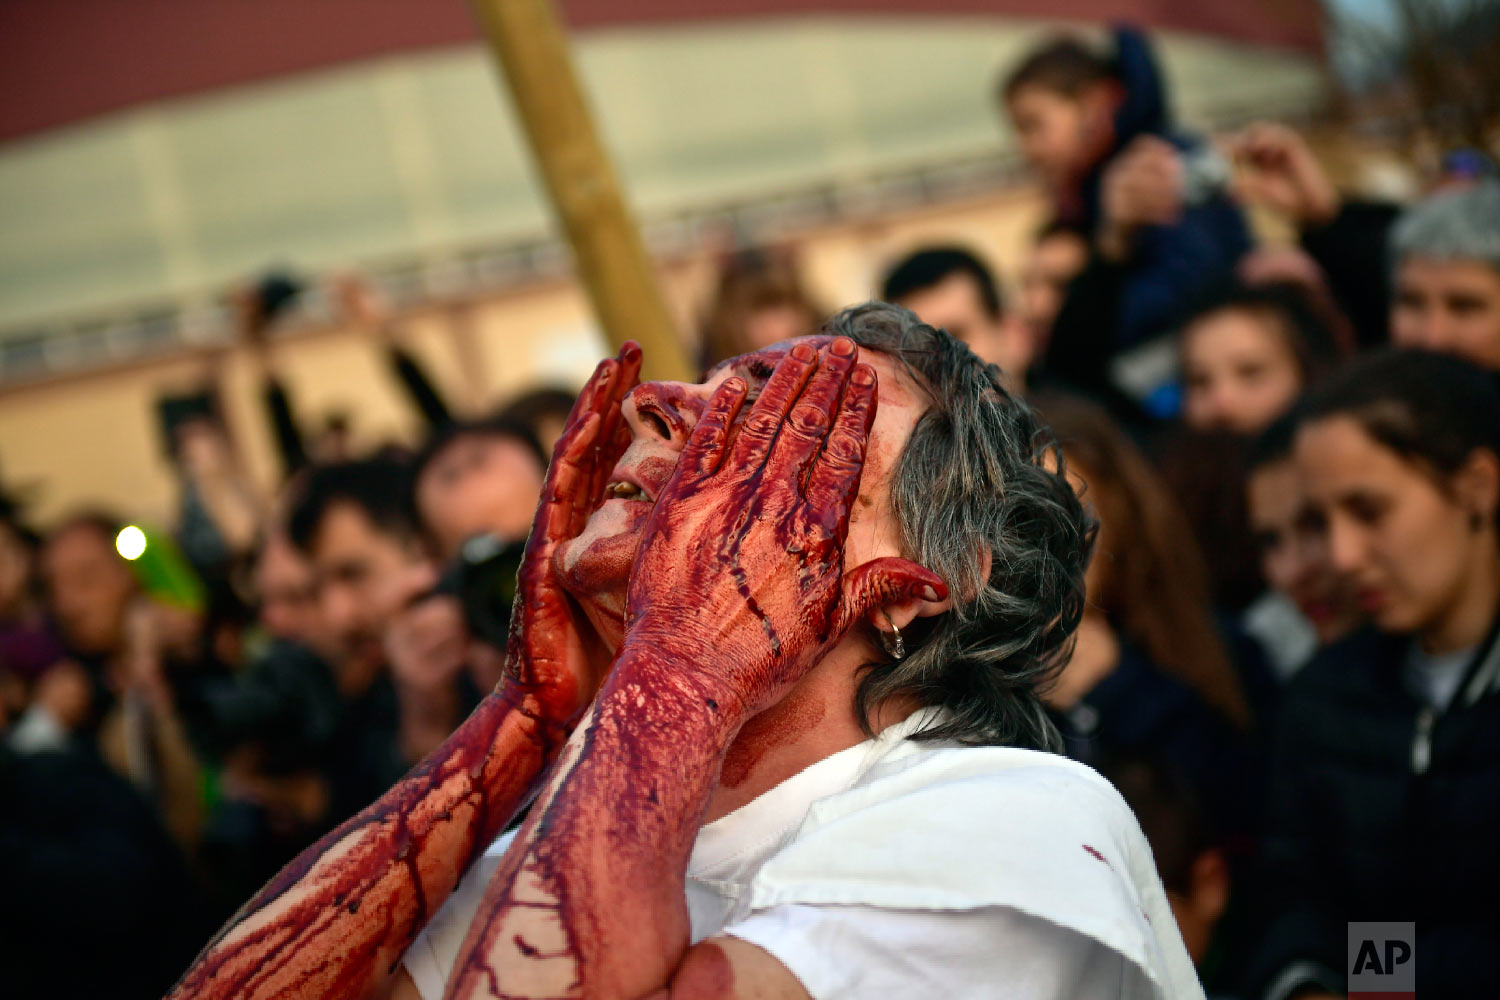 "A ""momotxorro'' covers his face with blood while taking part in the carnival wearing typical carnival dress, in Alsasua, northern Spain, Tuesday, March 5, 2019. (AP Photo/Alvaro Barrientos)"